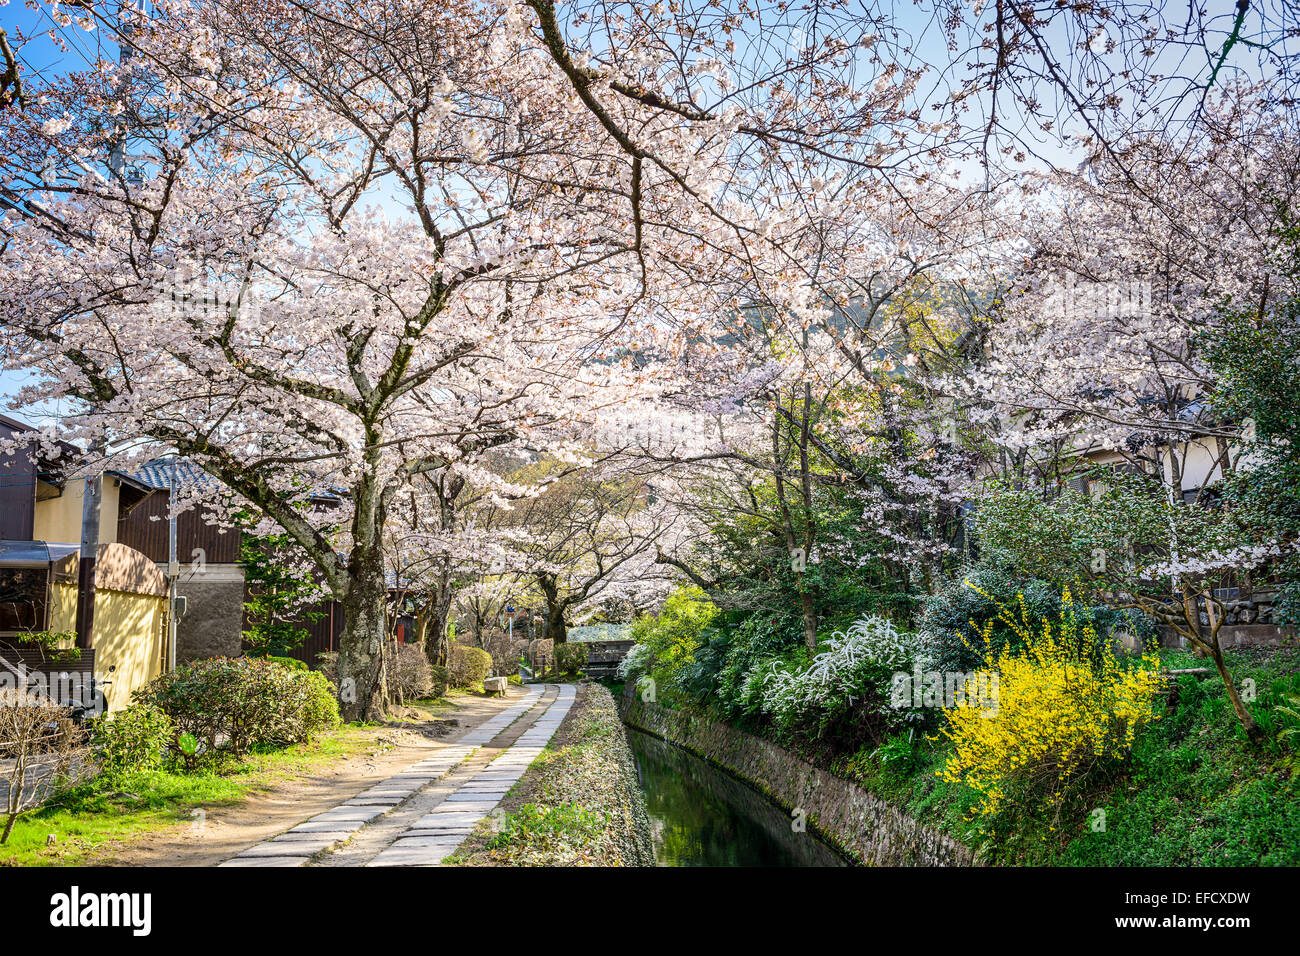 Kyoto, Japan at Philosopher's Walk in the spring season. - Stock Image